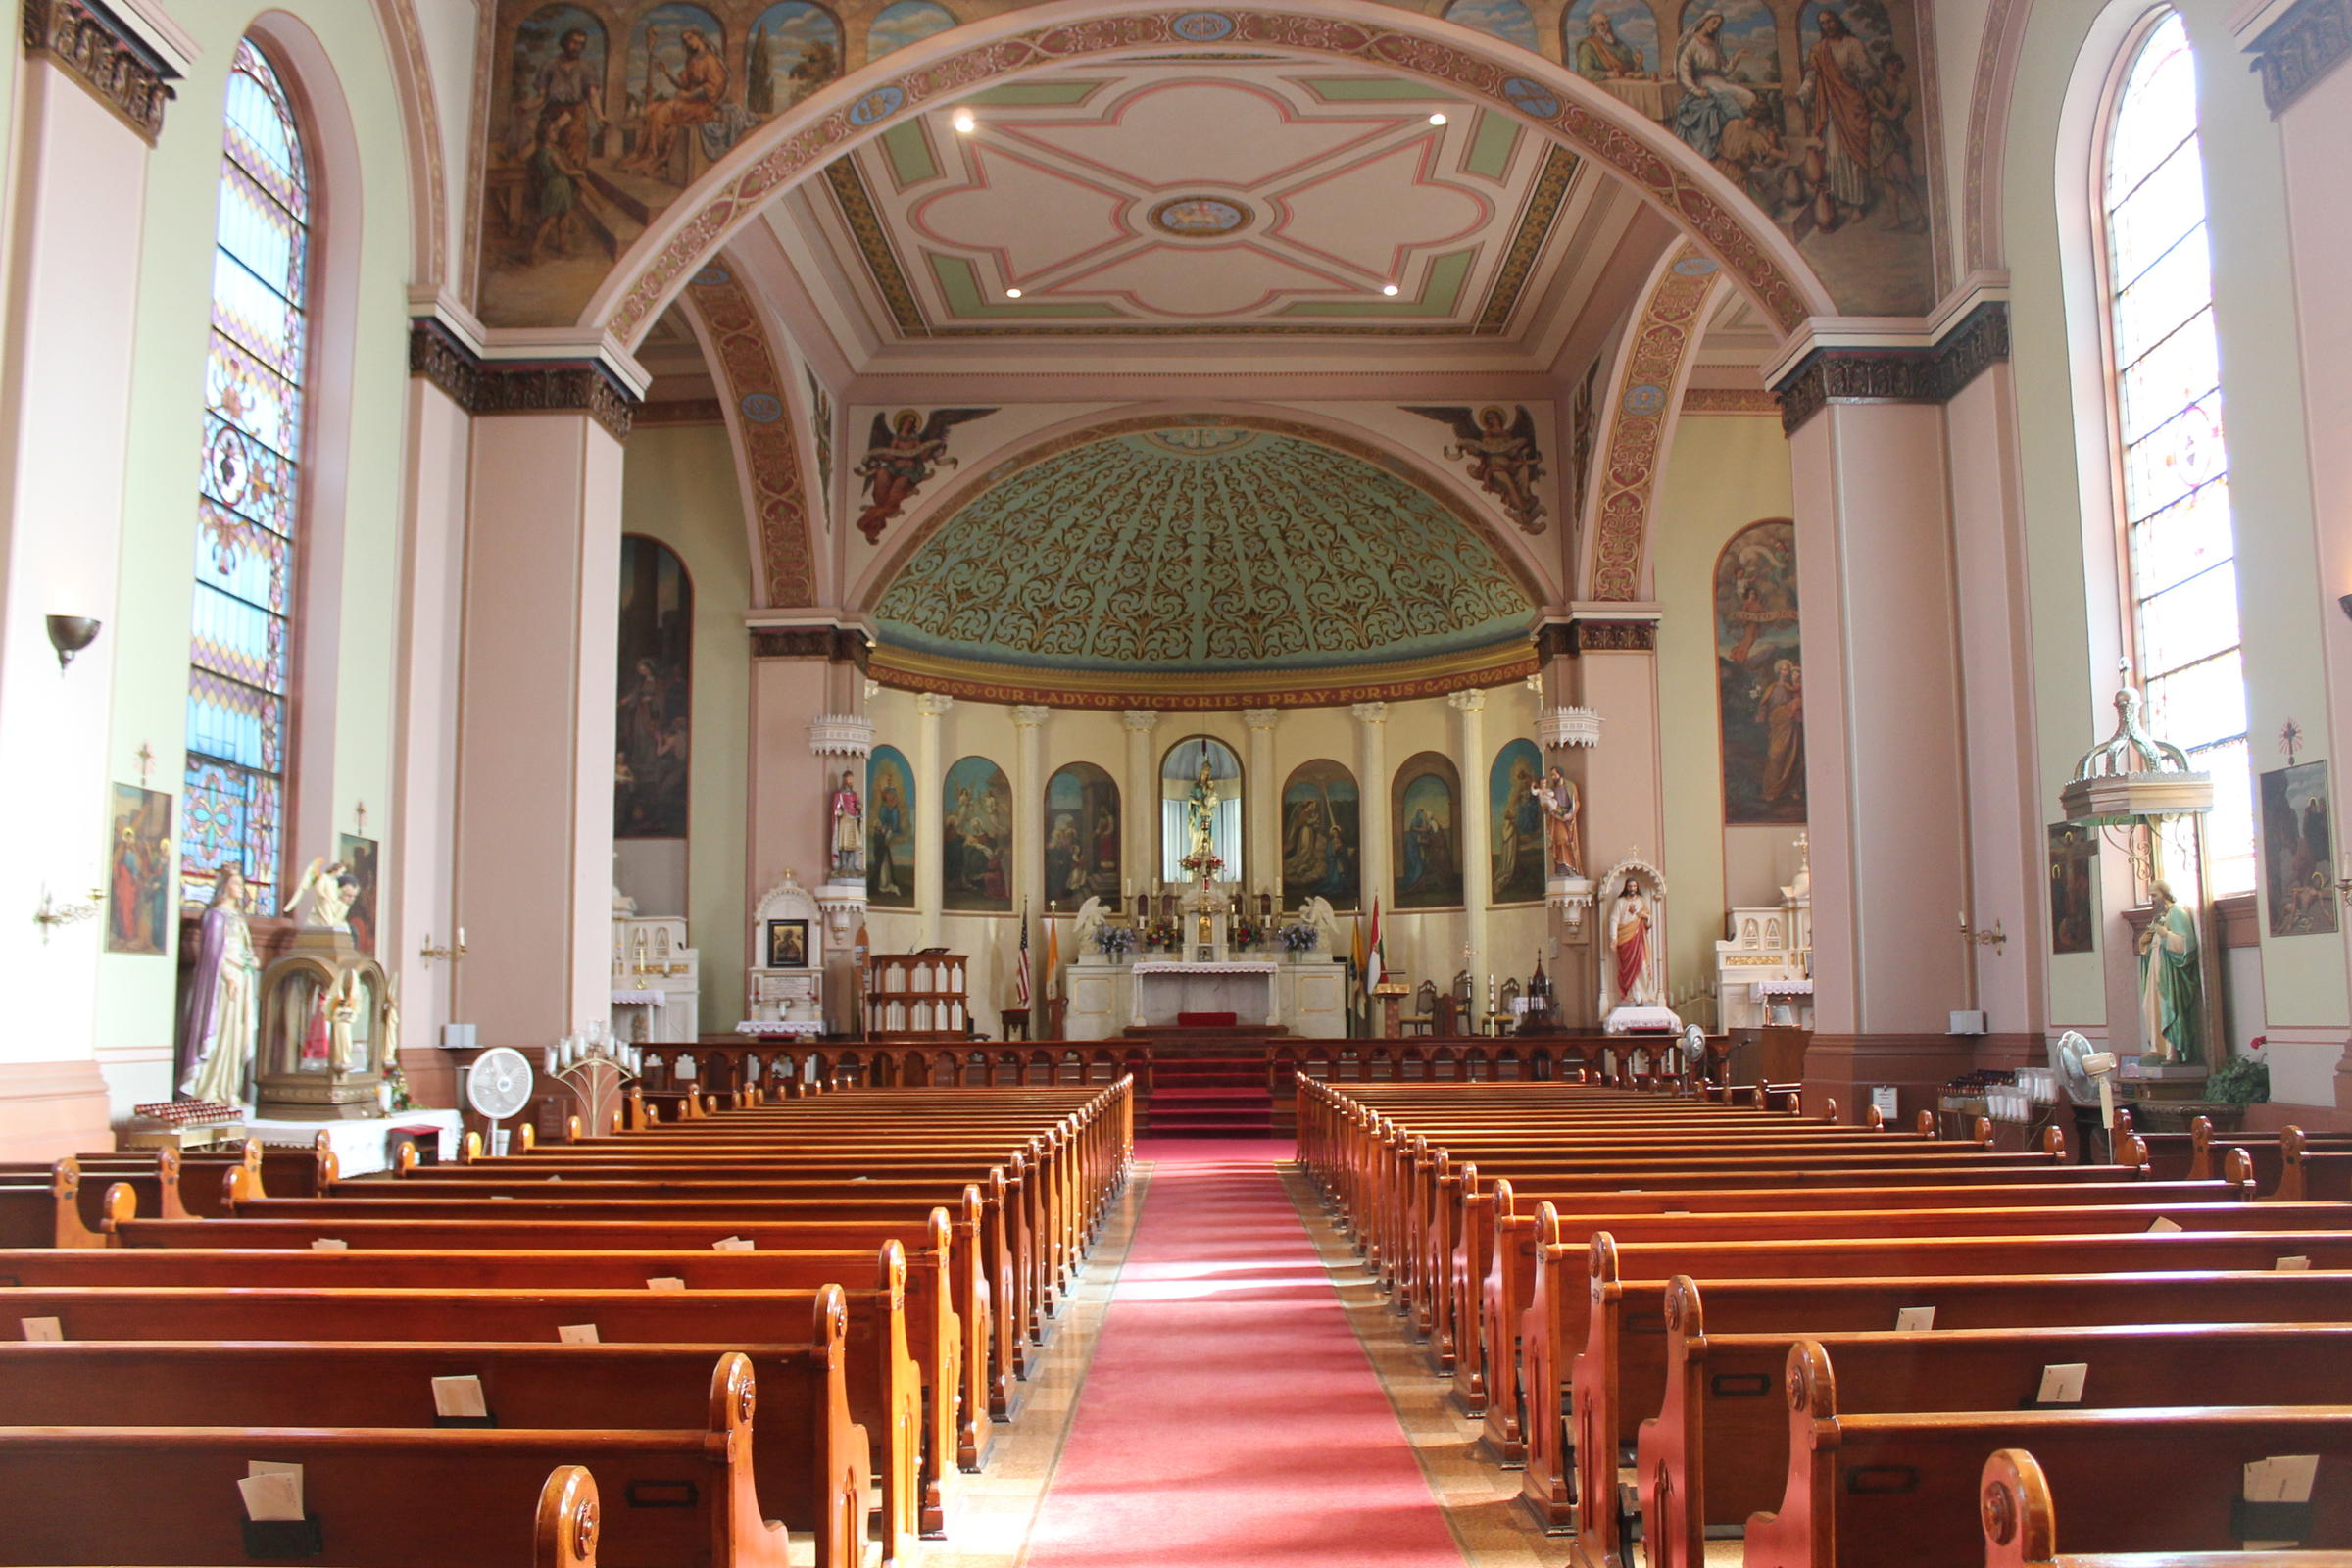 Sanctuary of the church. Image obtained from St. Louis Public Radio.